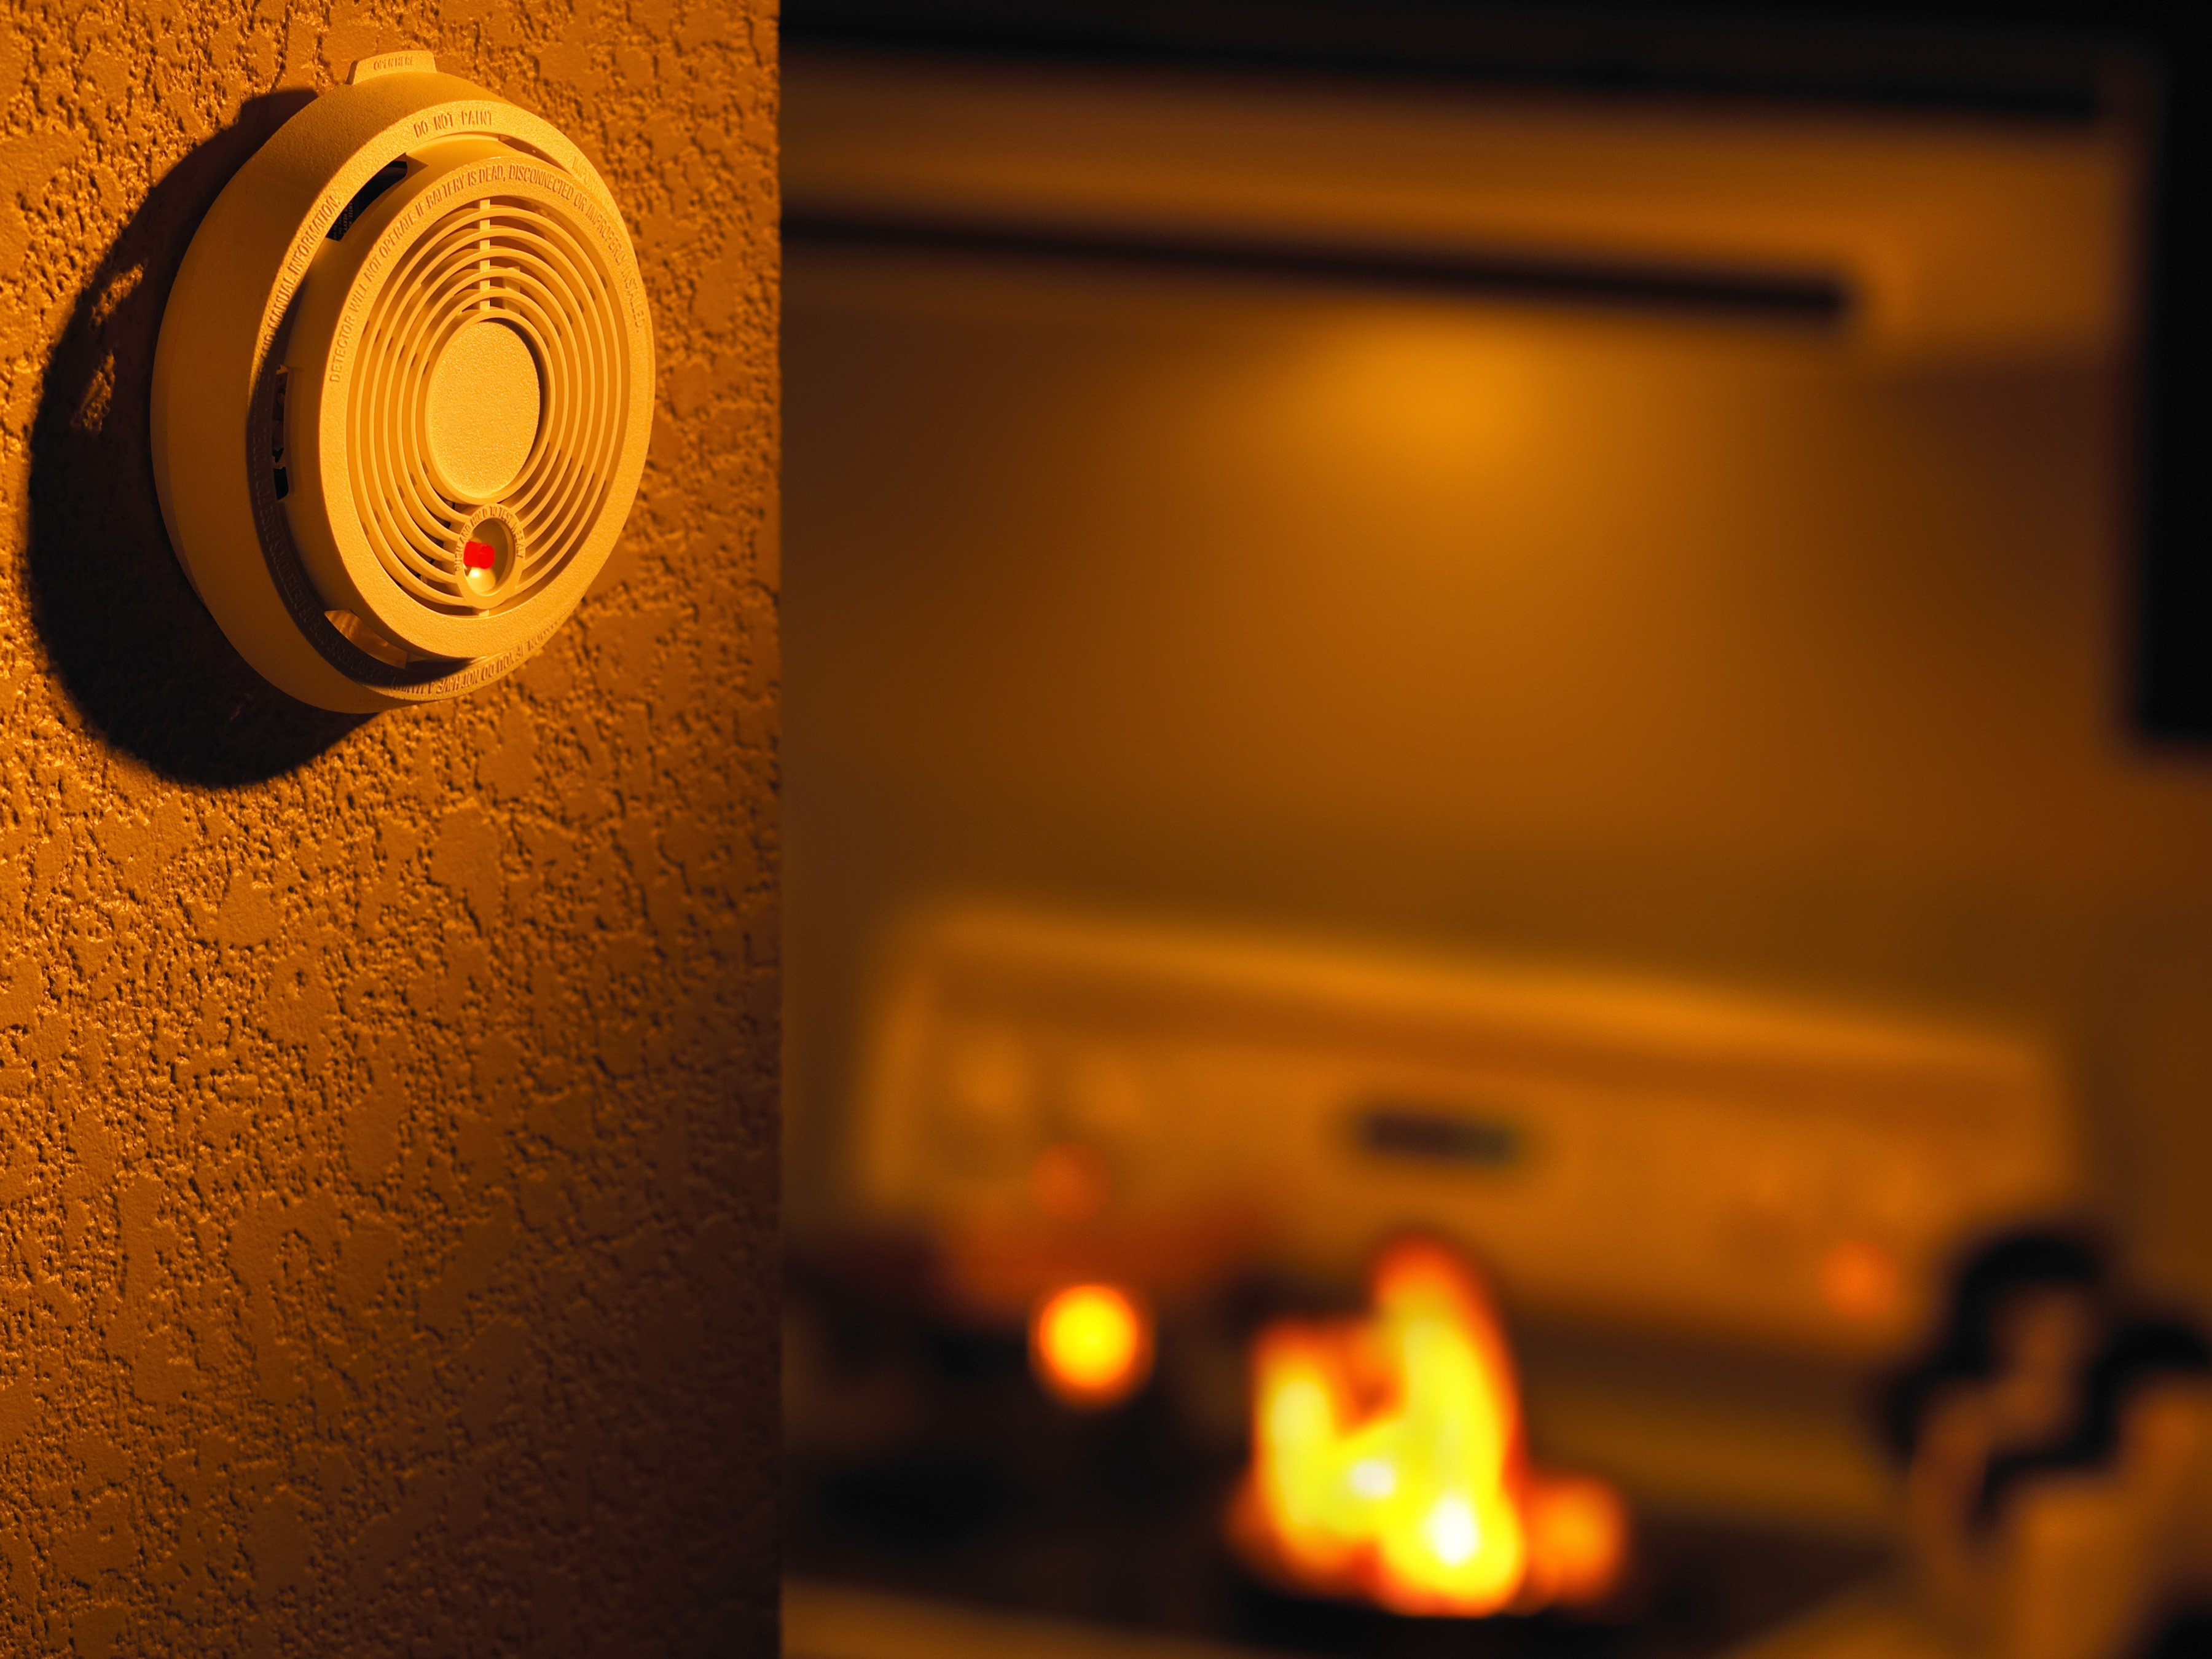 Off-centered view of smoke detector with small kitchen fire in background-ThinkstockPhotos-87630099-Jupiterimages